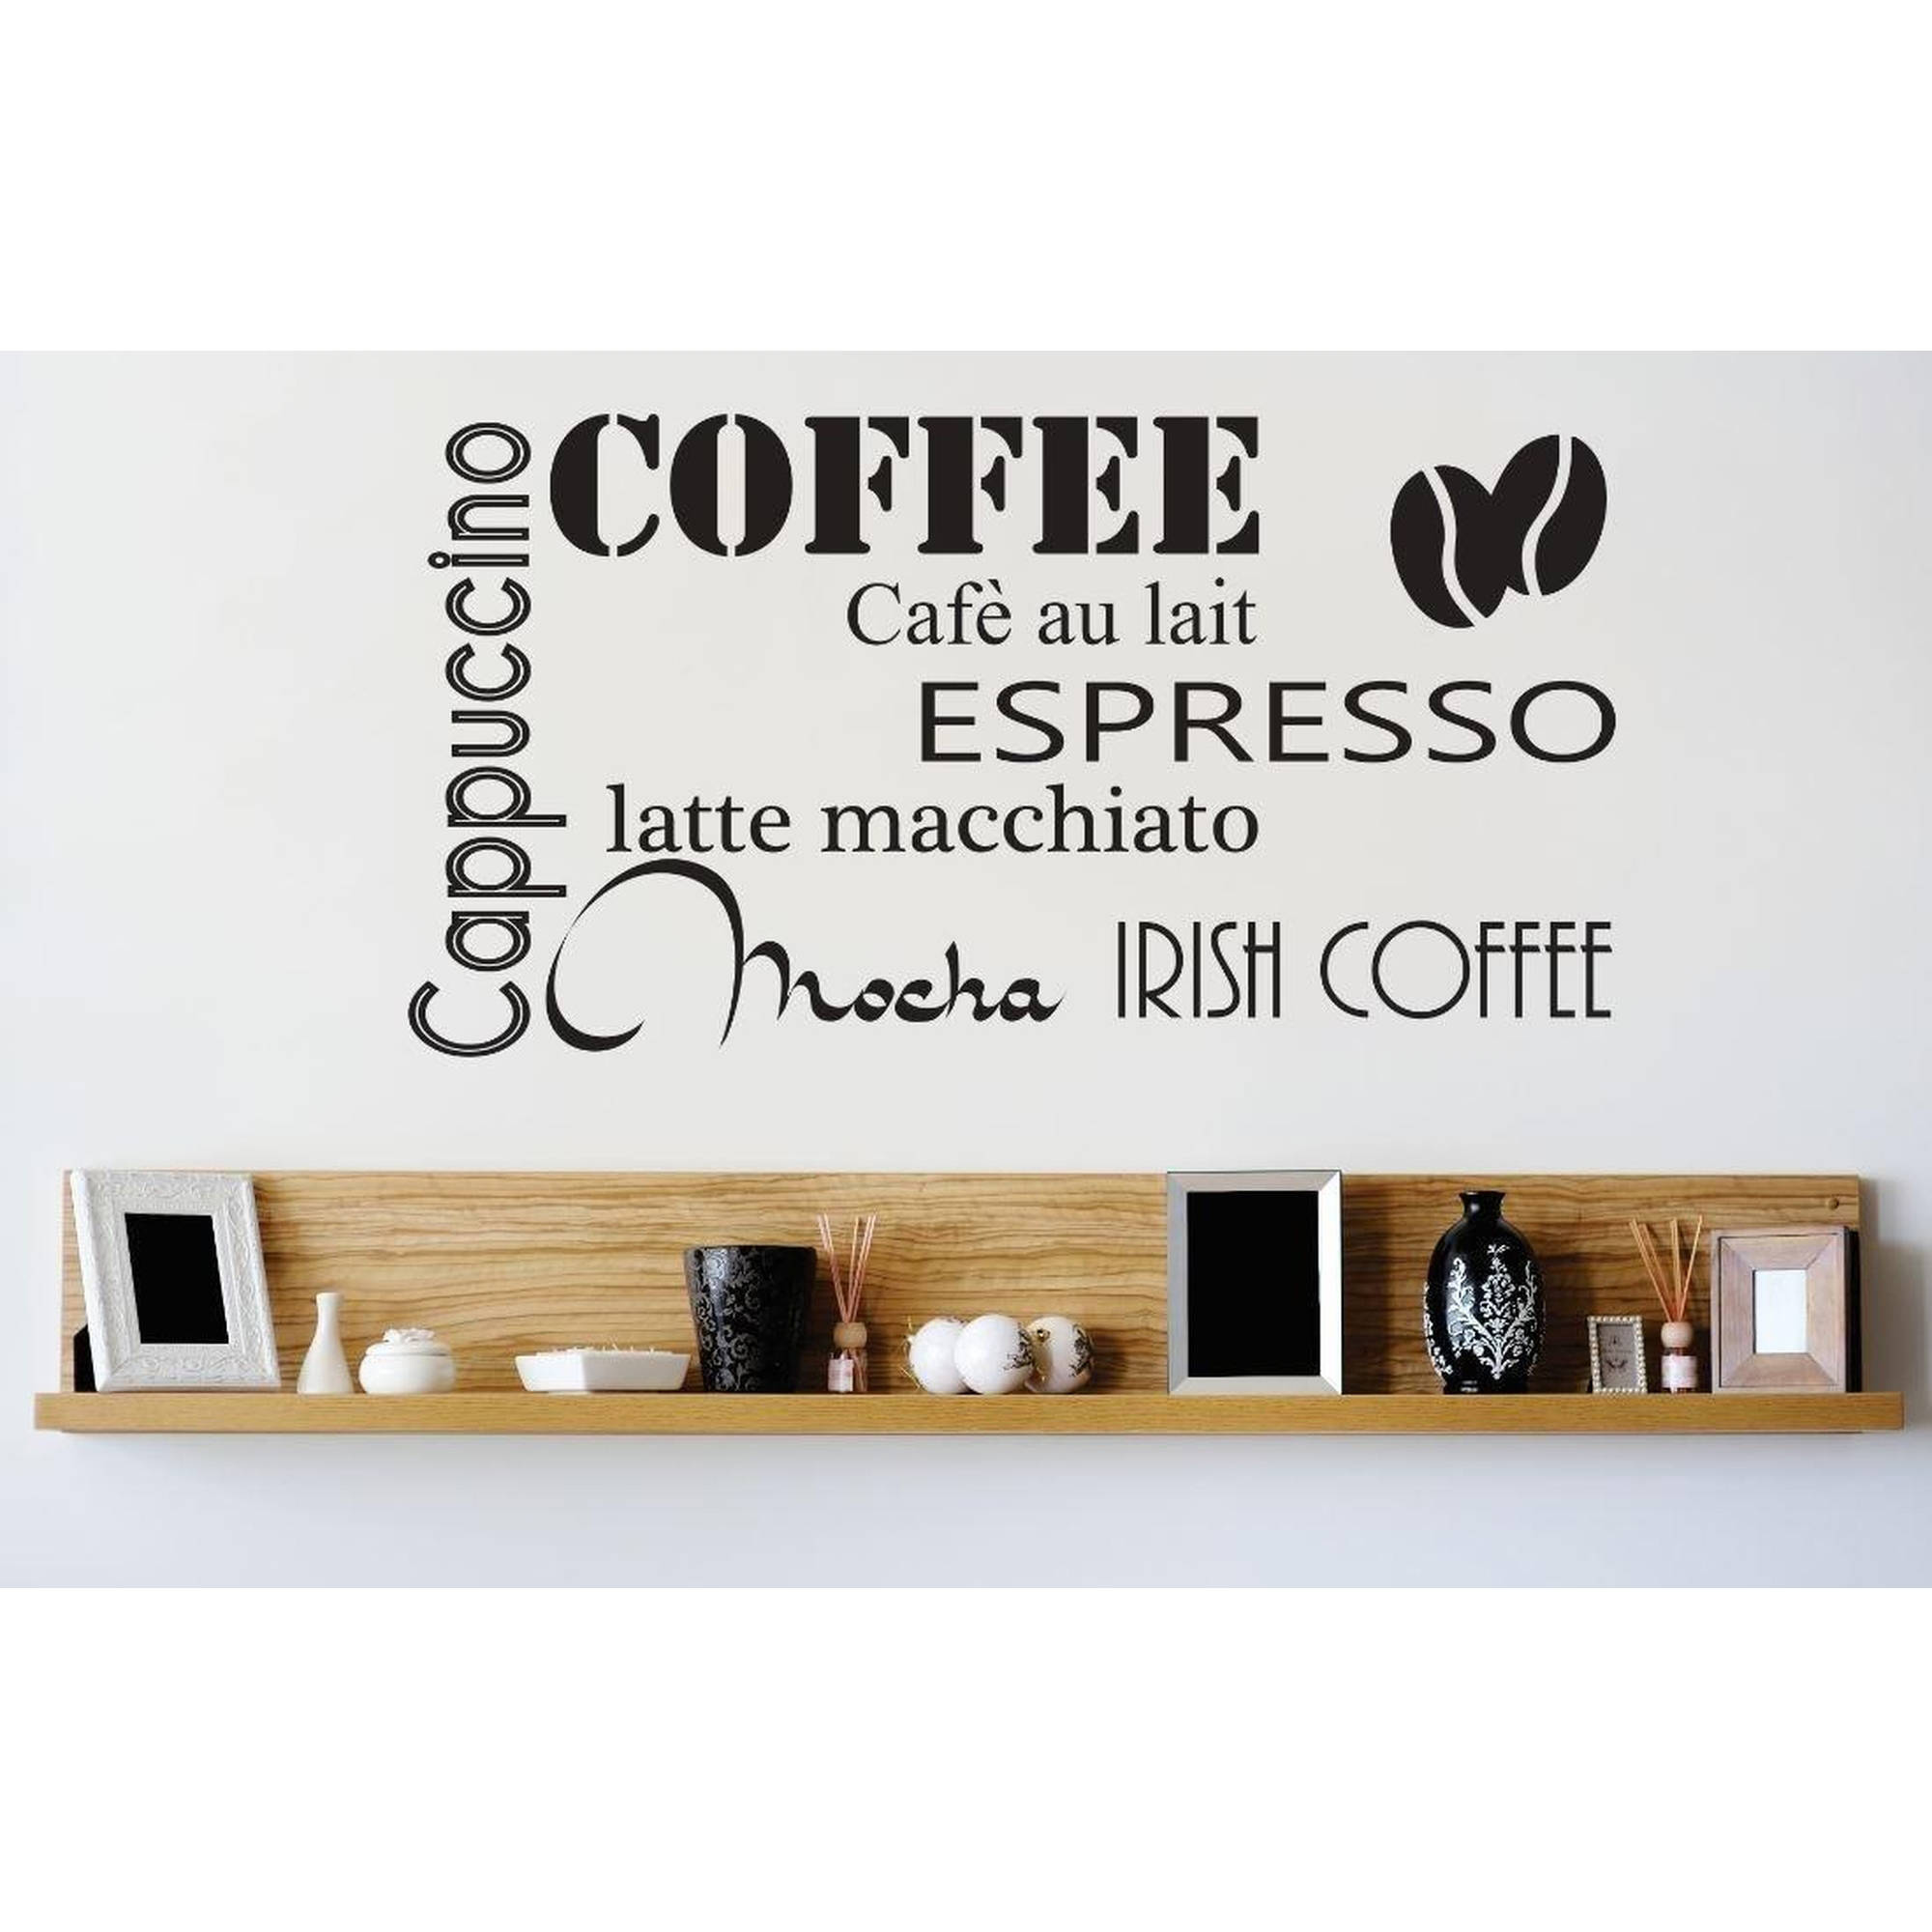 "Coffee Cappuccino Espresso Latte Macchiato Irish Coffee Mocha Café Au Lait Kitchen Vinyl Wall Decal, 9"" x 20"", Black"